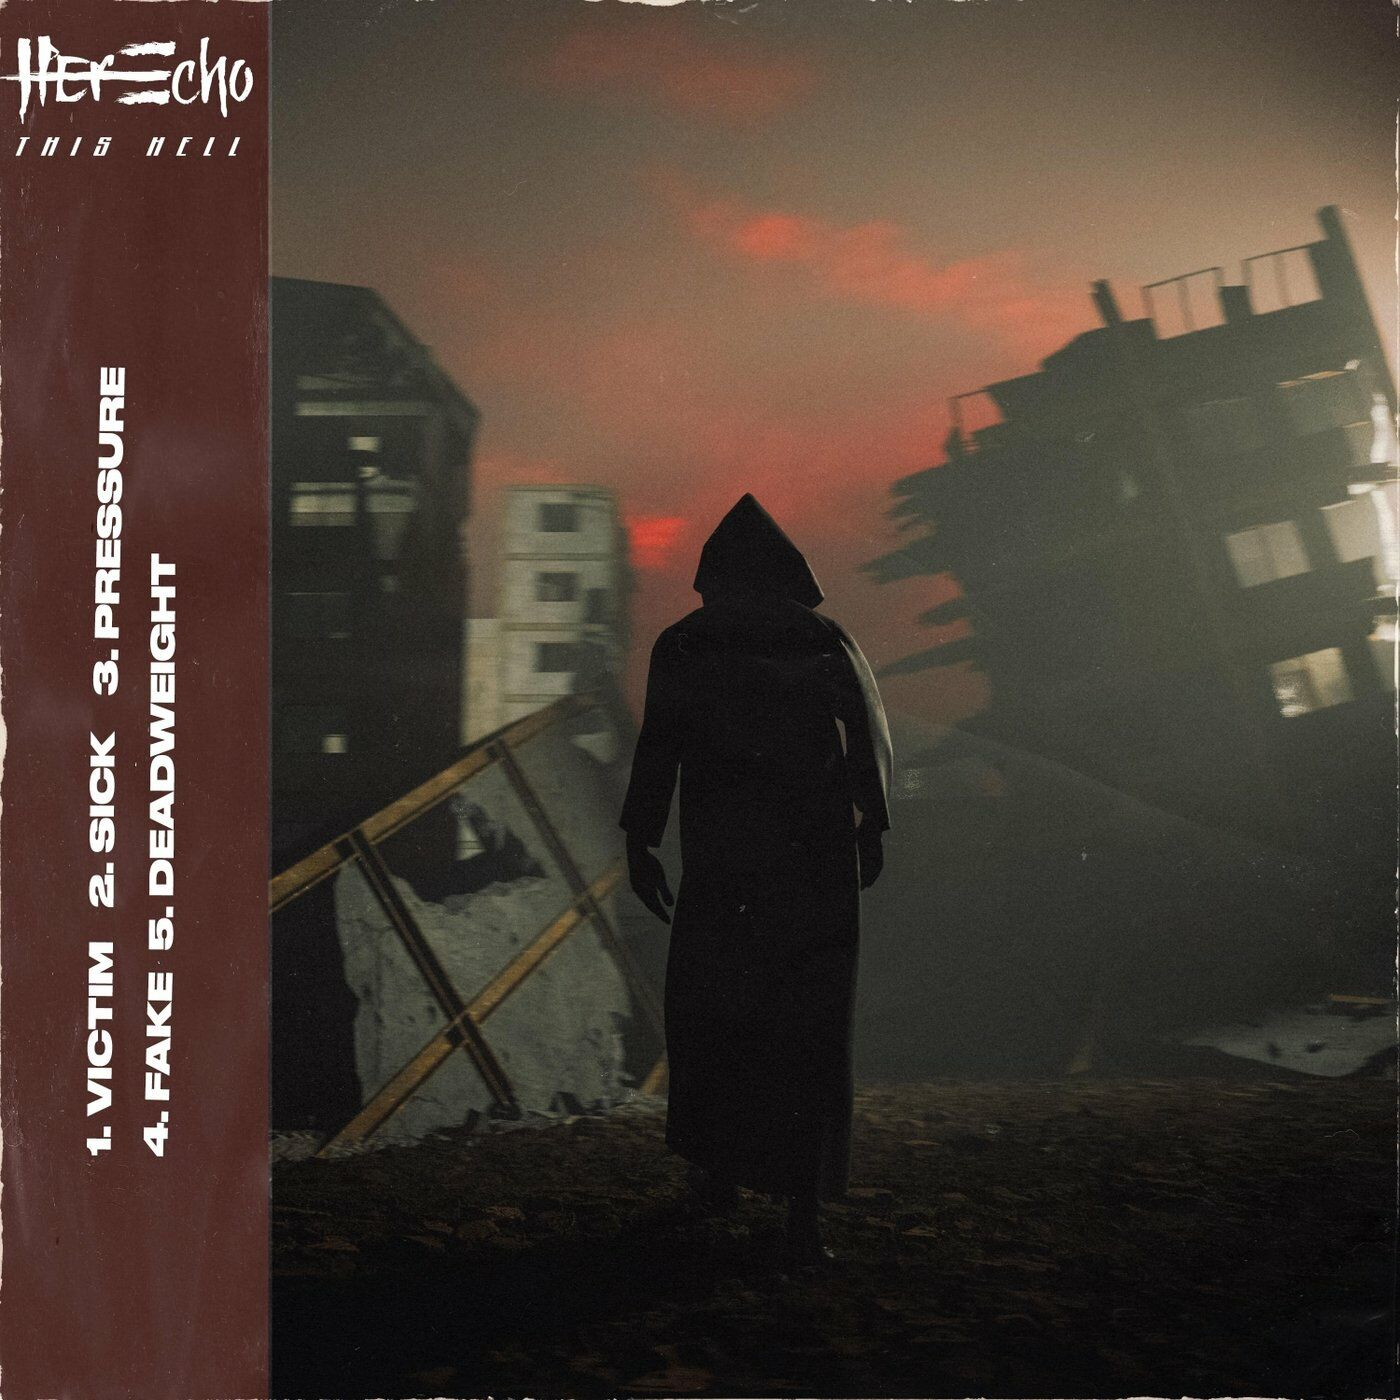 Her Echo - This Hell [EP] (2021)